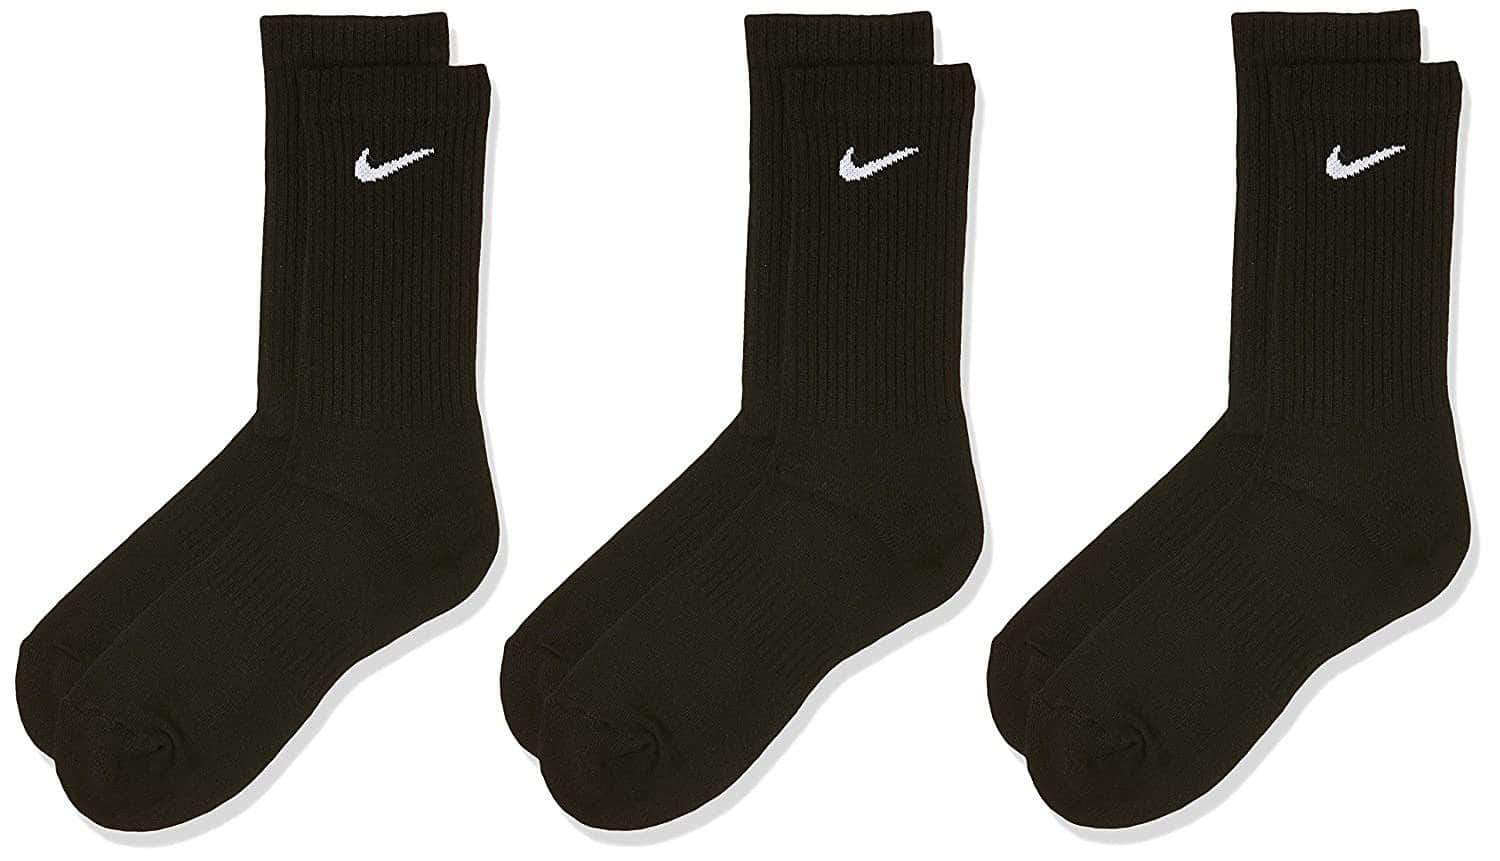 GBNY XL Nike Everyday Cushioned Training Crew Socks (3 Pairs) 883419009433 SX7664-010